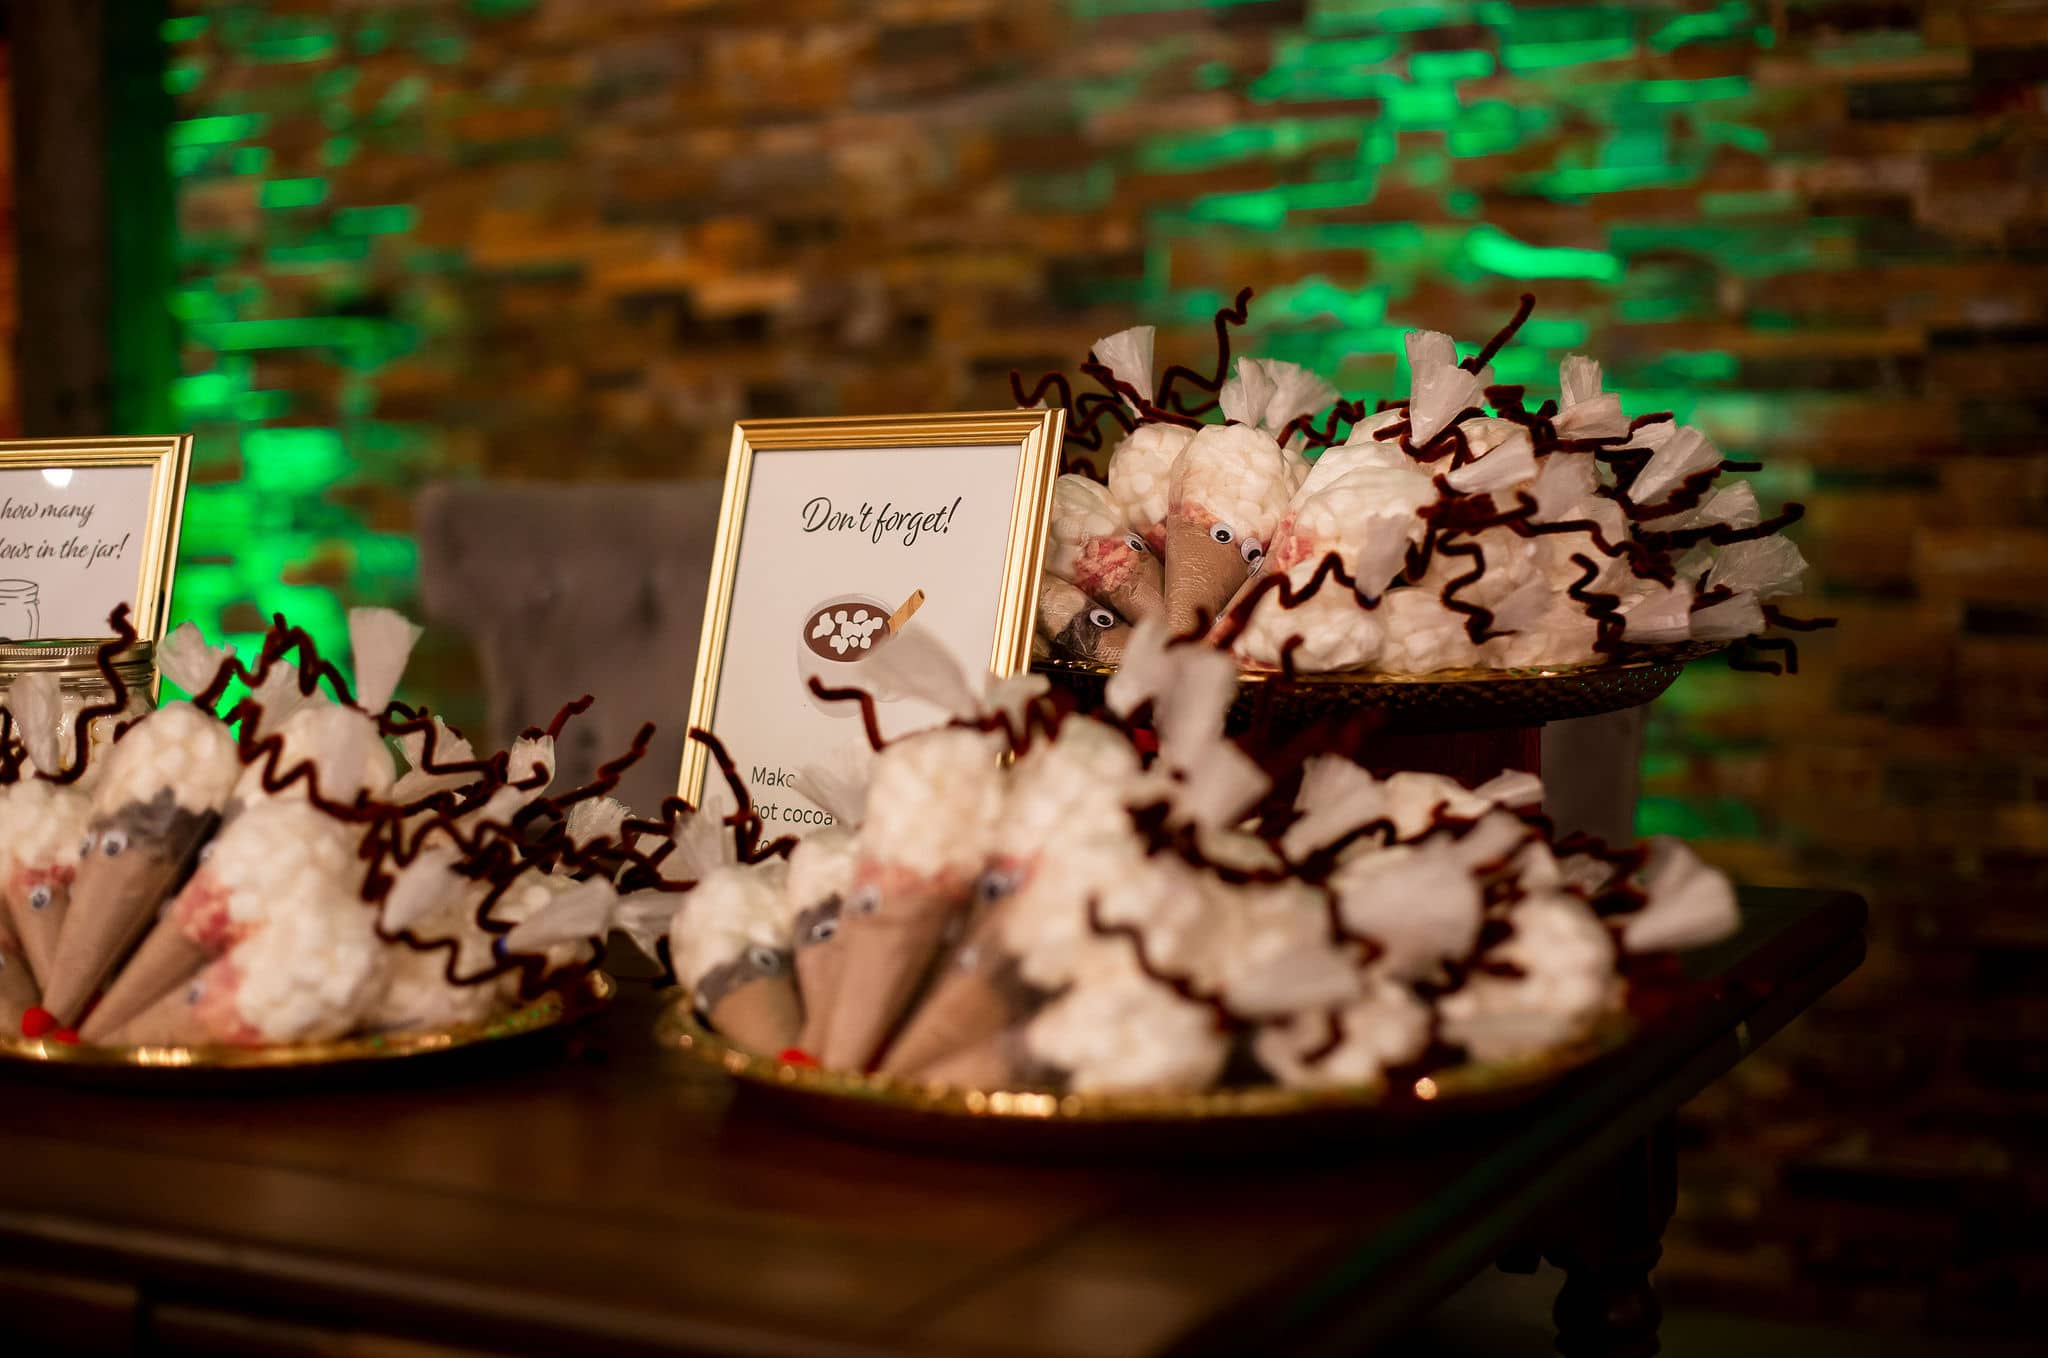 cones filled with hot cocoa powder and toppings of chocolate chips and candy canes on three different platters with sign next to it and green uplighting behind